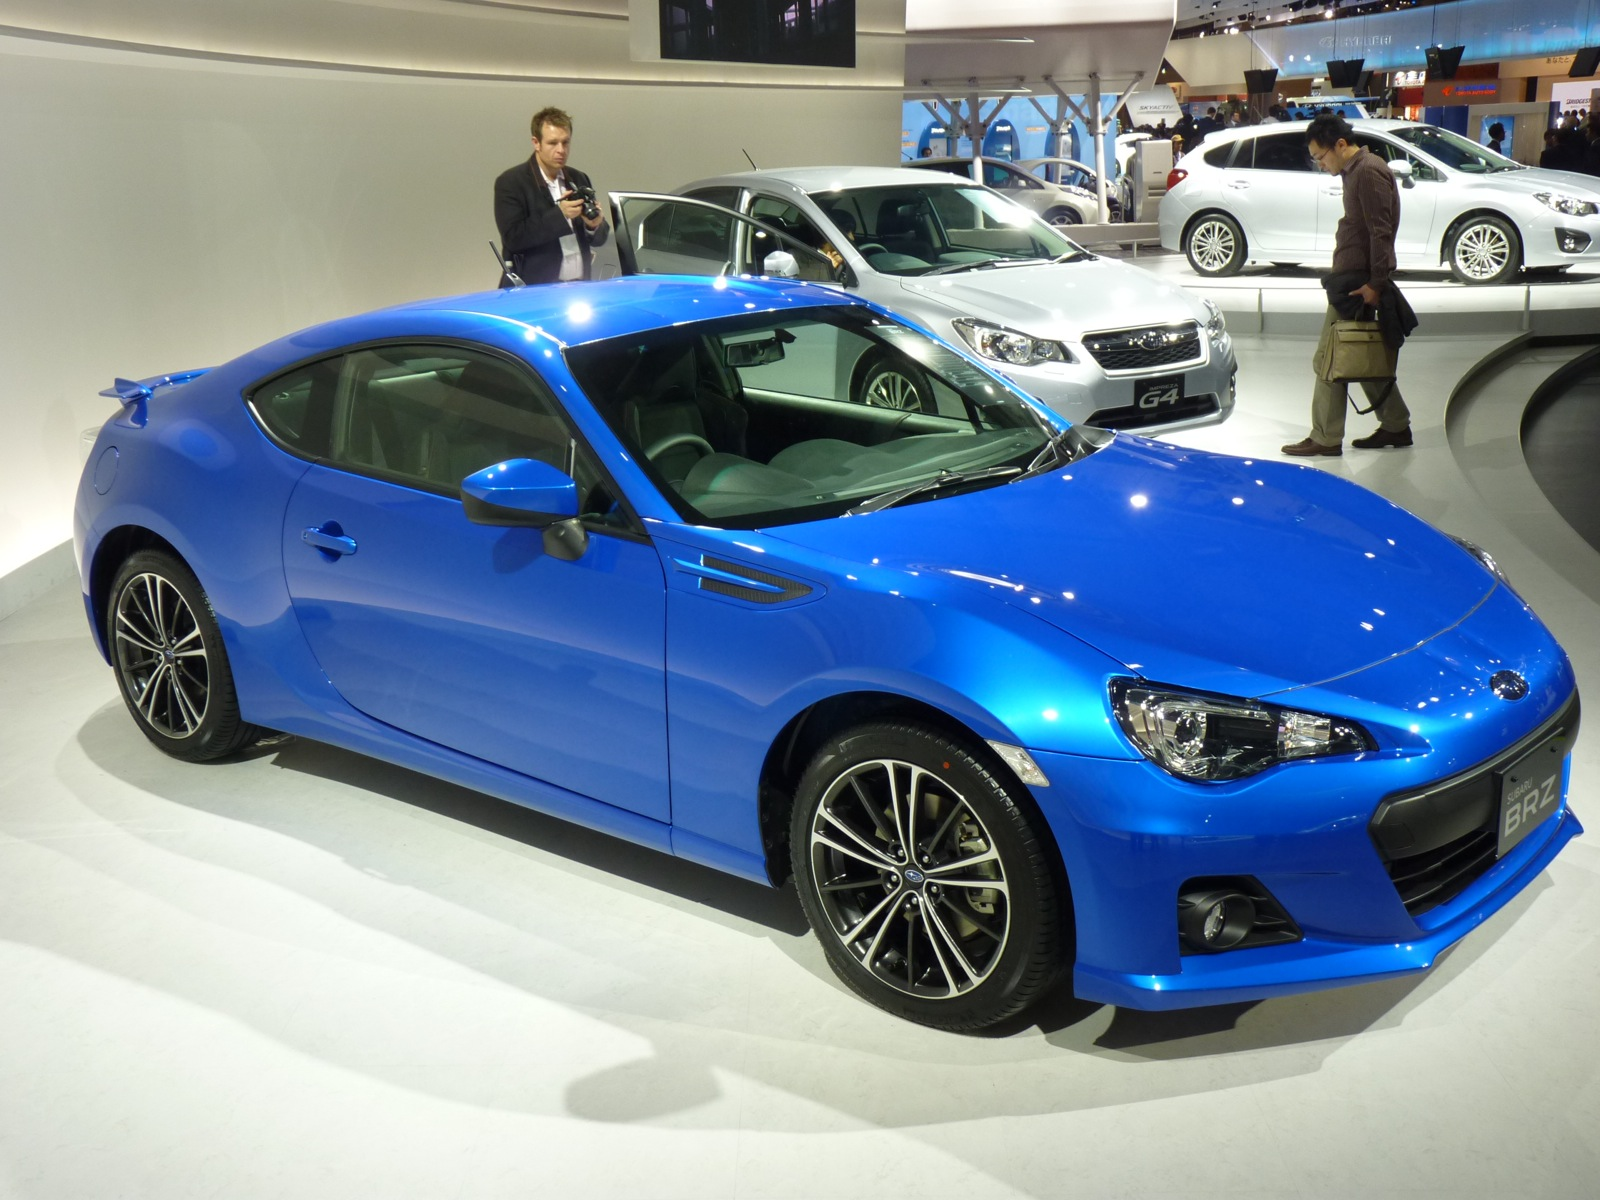 Minivans For Sale >> 2013 Subaru BRZ Live Photos And Video: 2011 Tokyo Motor Show